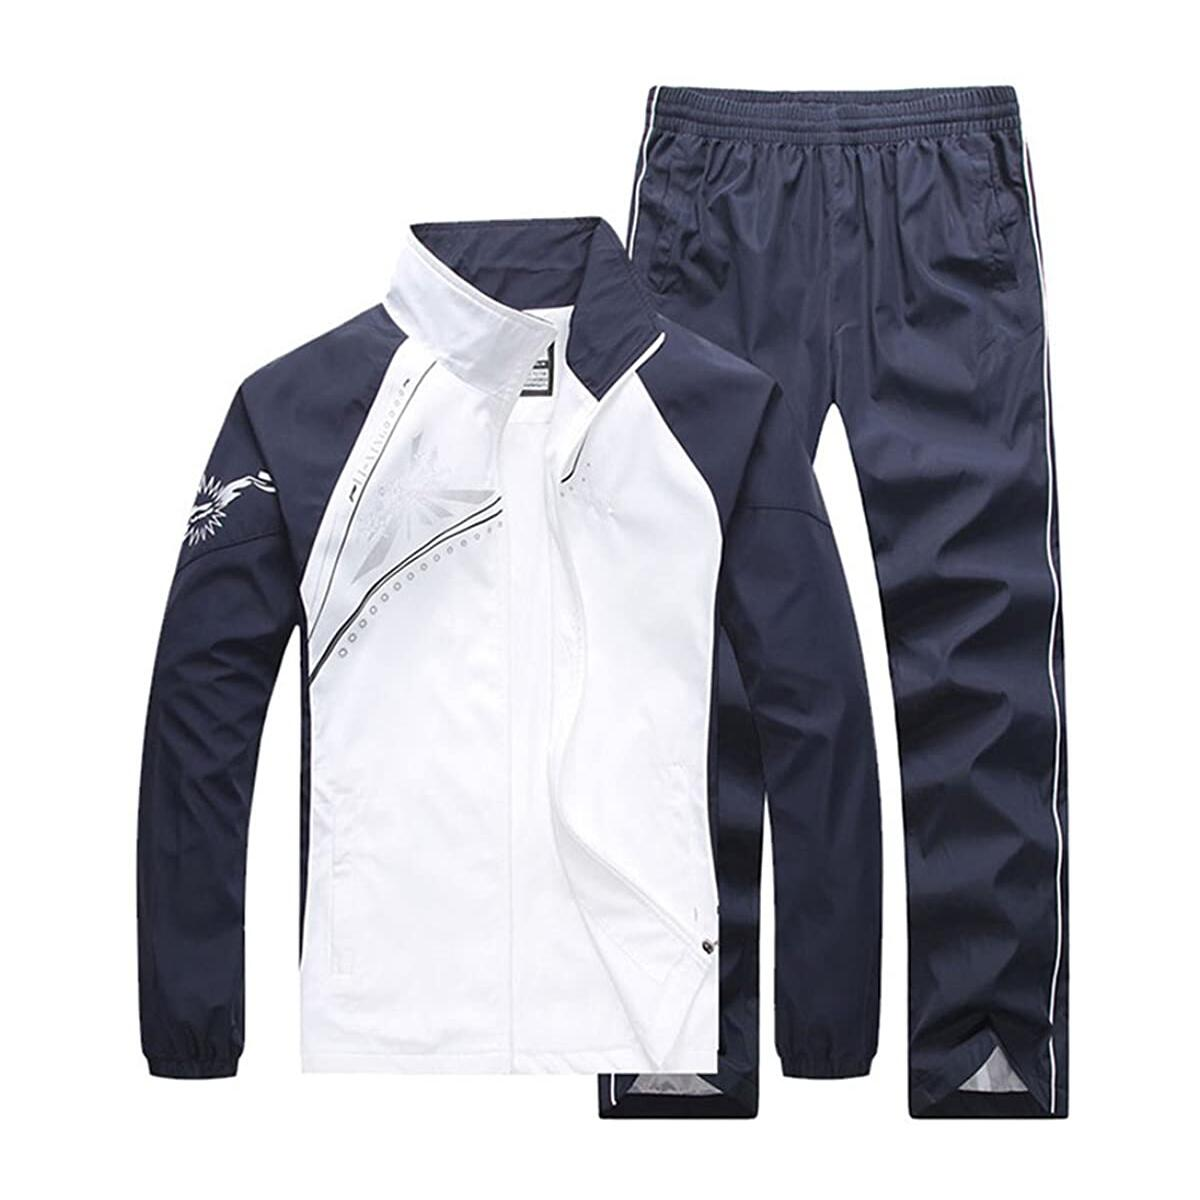 November's Chopin Men's Fitted Exercise Tracksuit Set 2 Pieces Full-Zip Casual Jogging Athletic Workout Sweat Suits